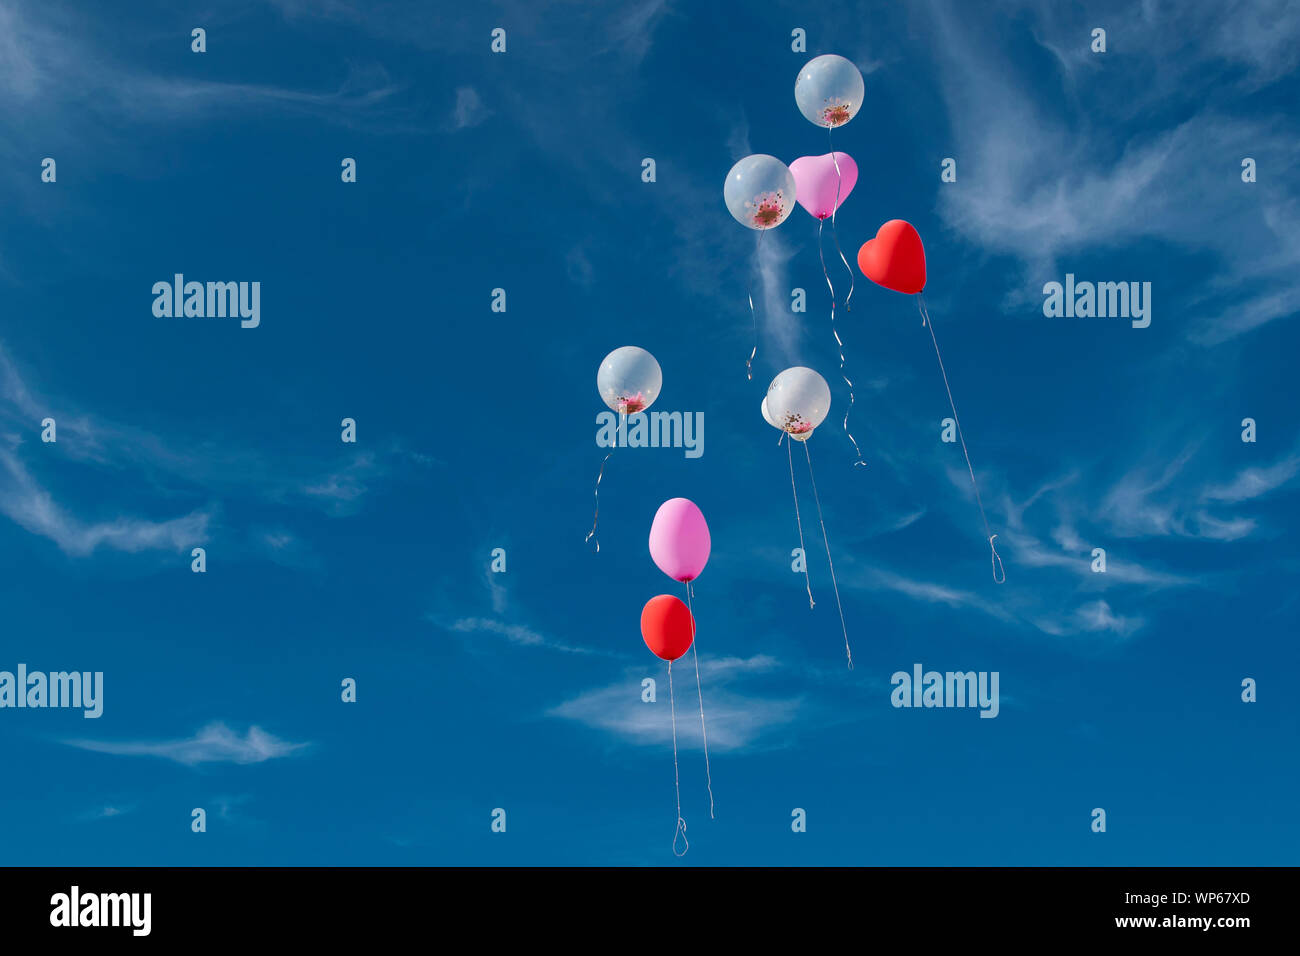 red heart shaped balloon in front of blue sky with clouds Stock Photo